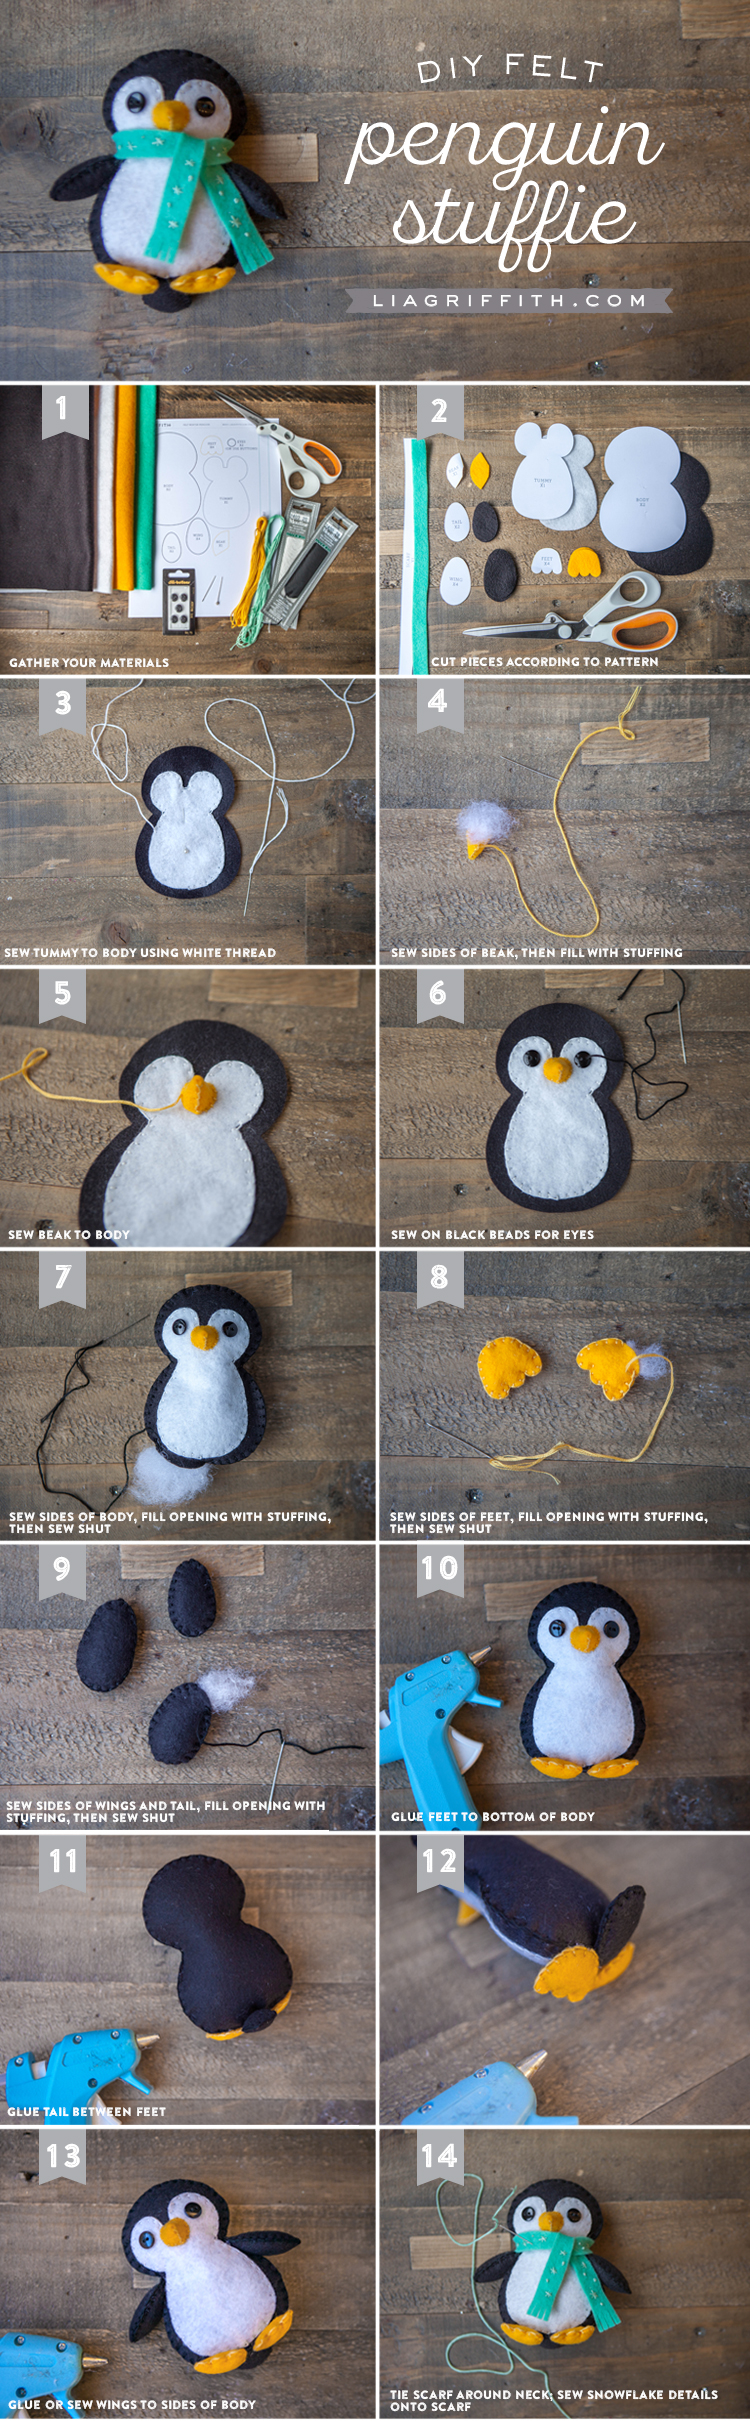 Felt_Penguin_Stuffie_Tutorial